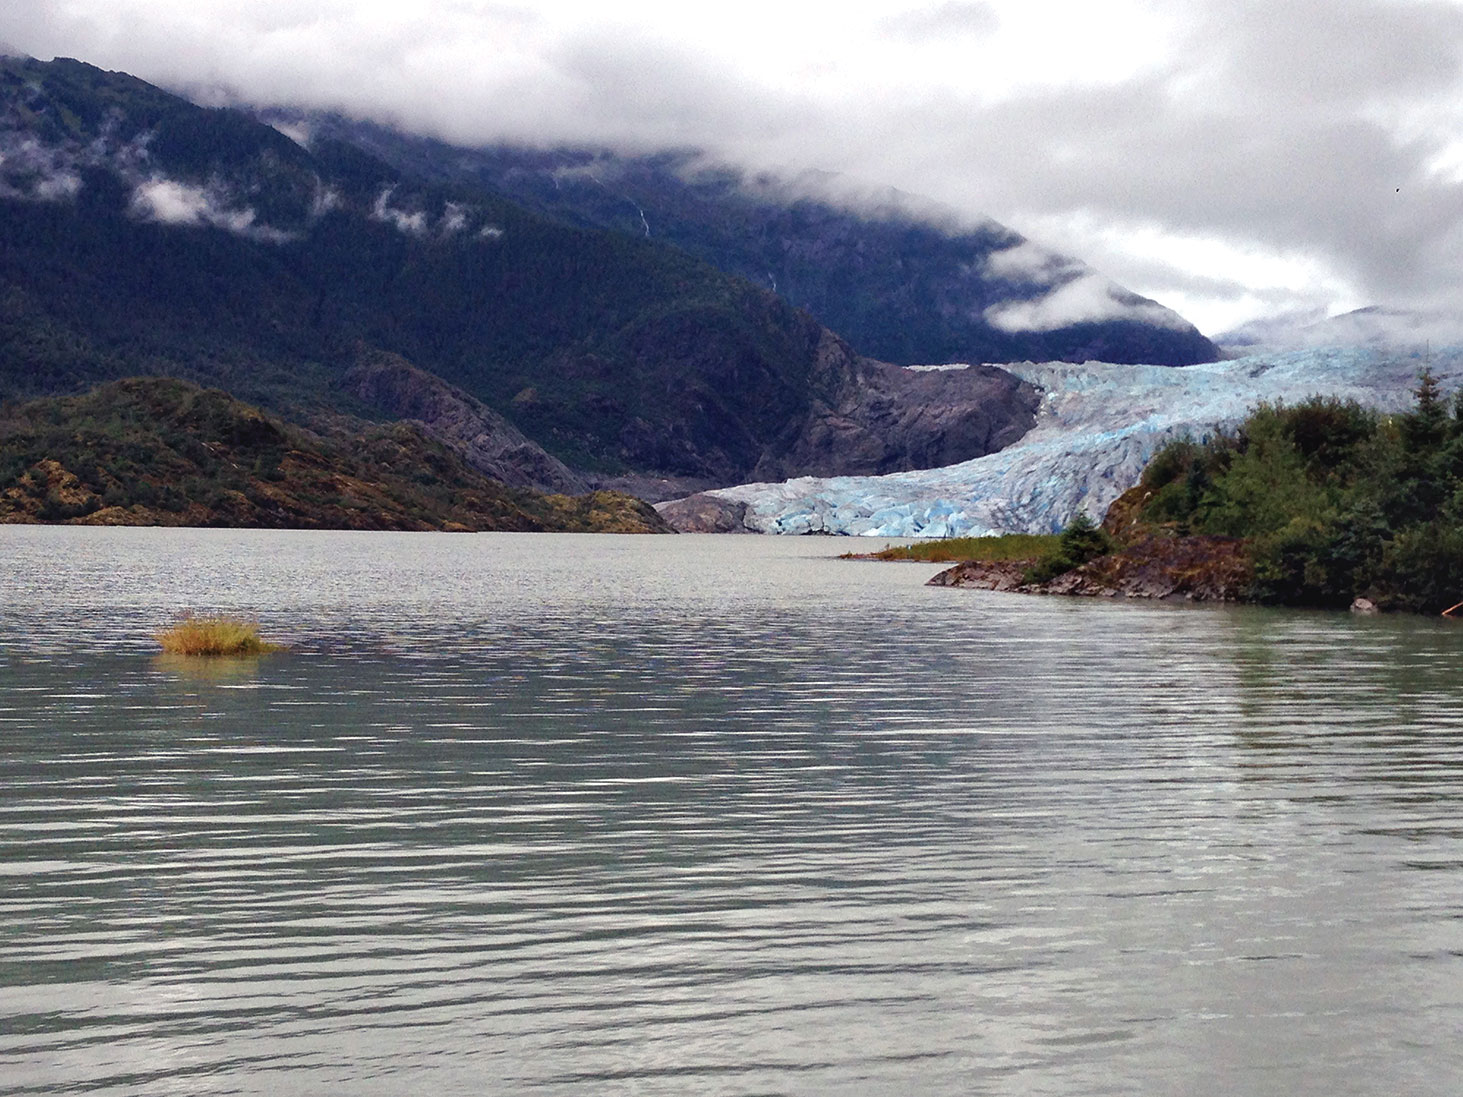 Experience glaciers and crystal clear waters in Alaska